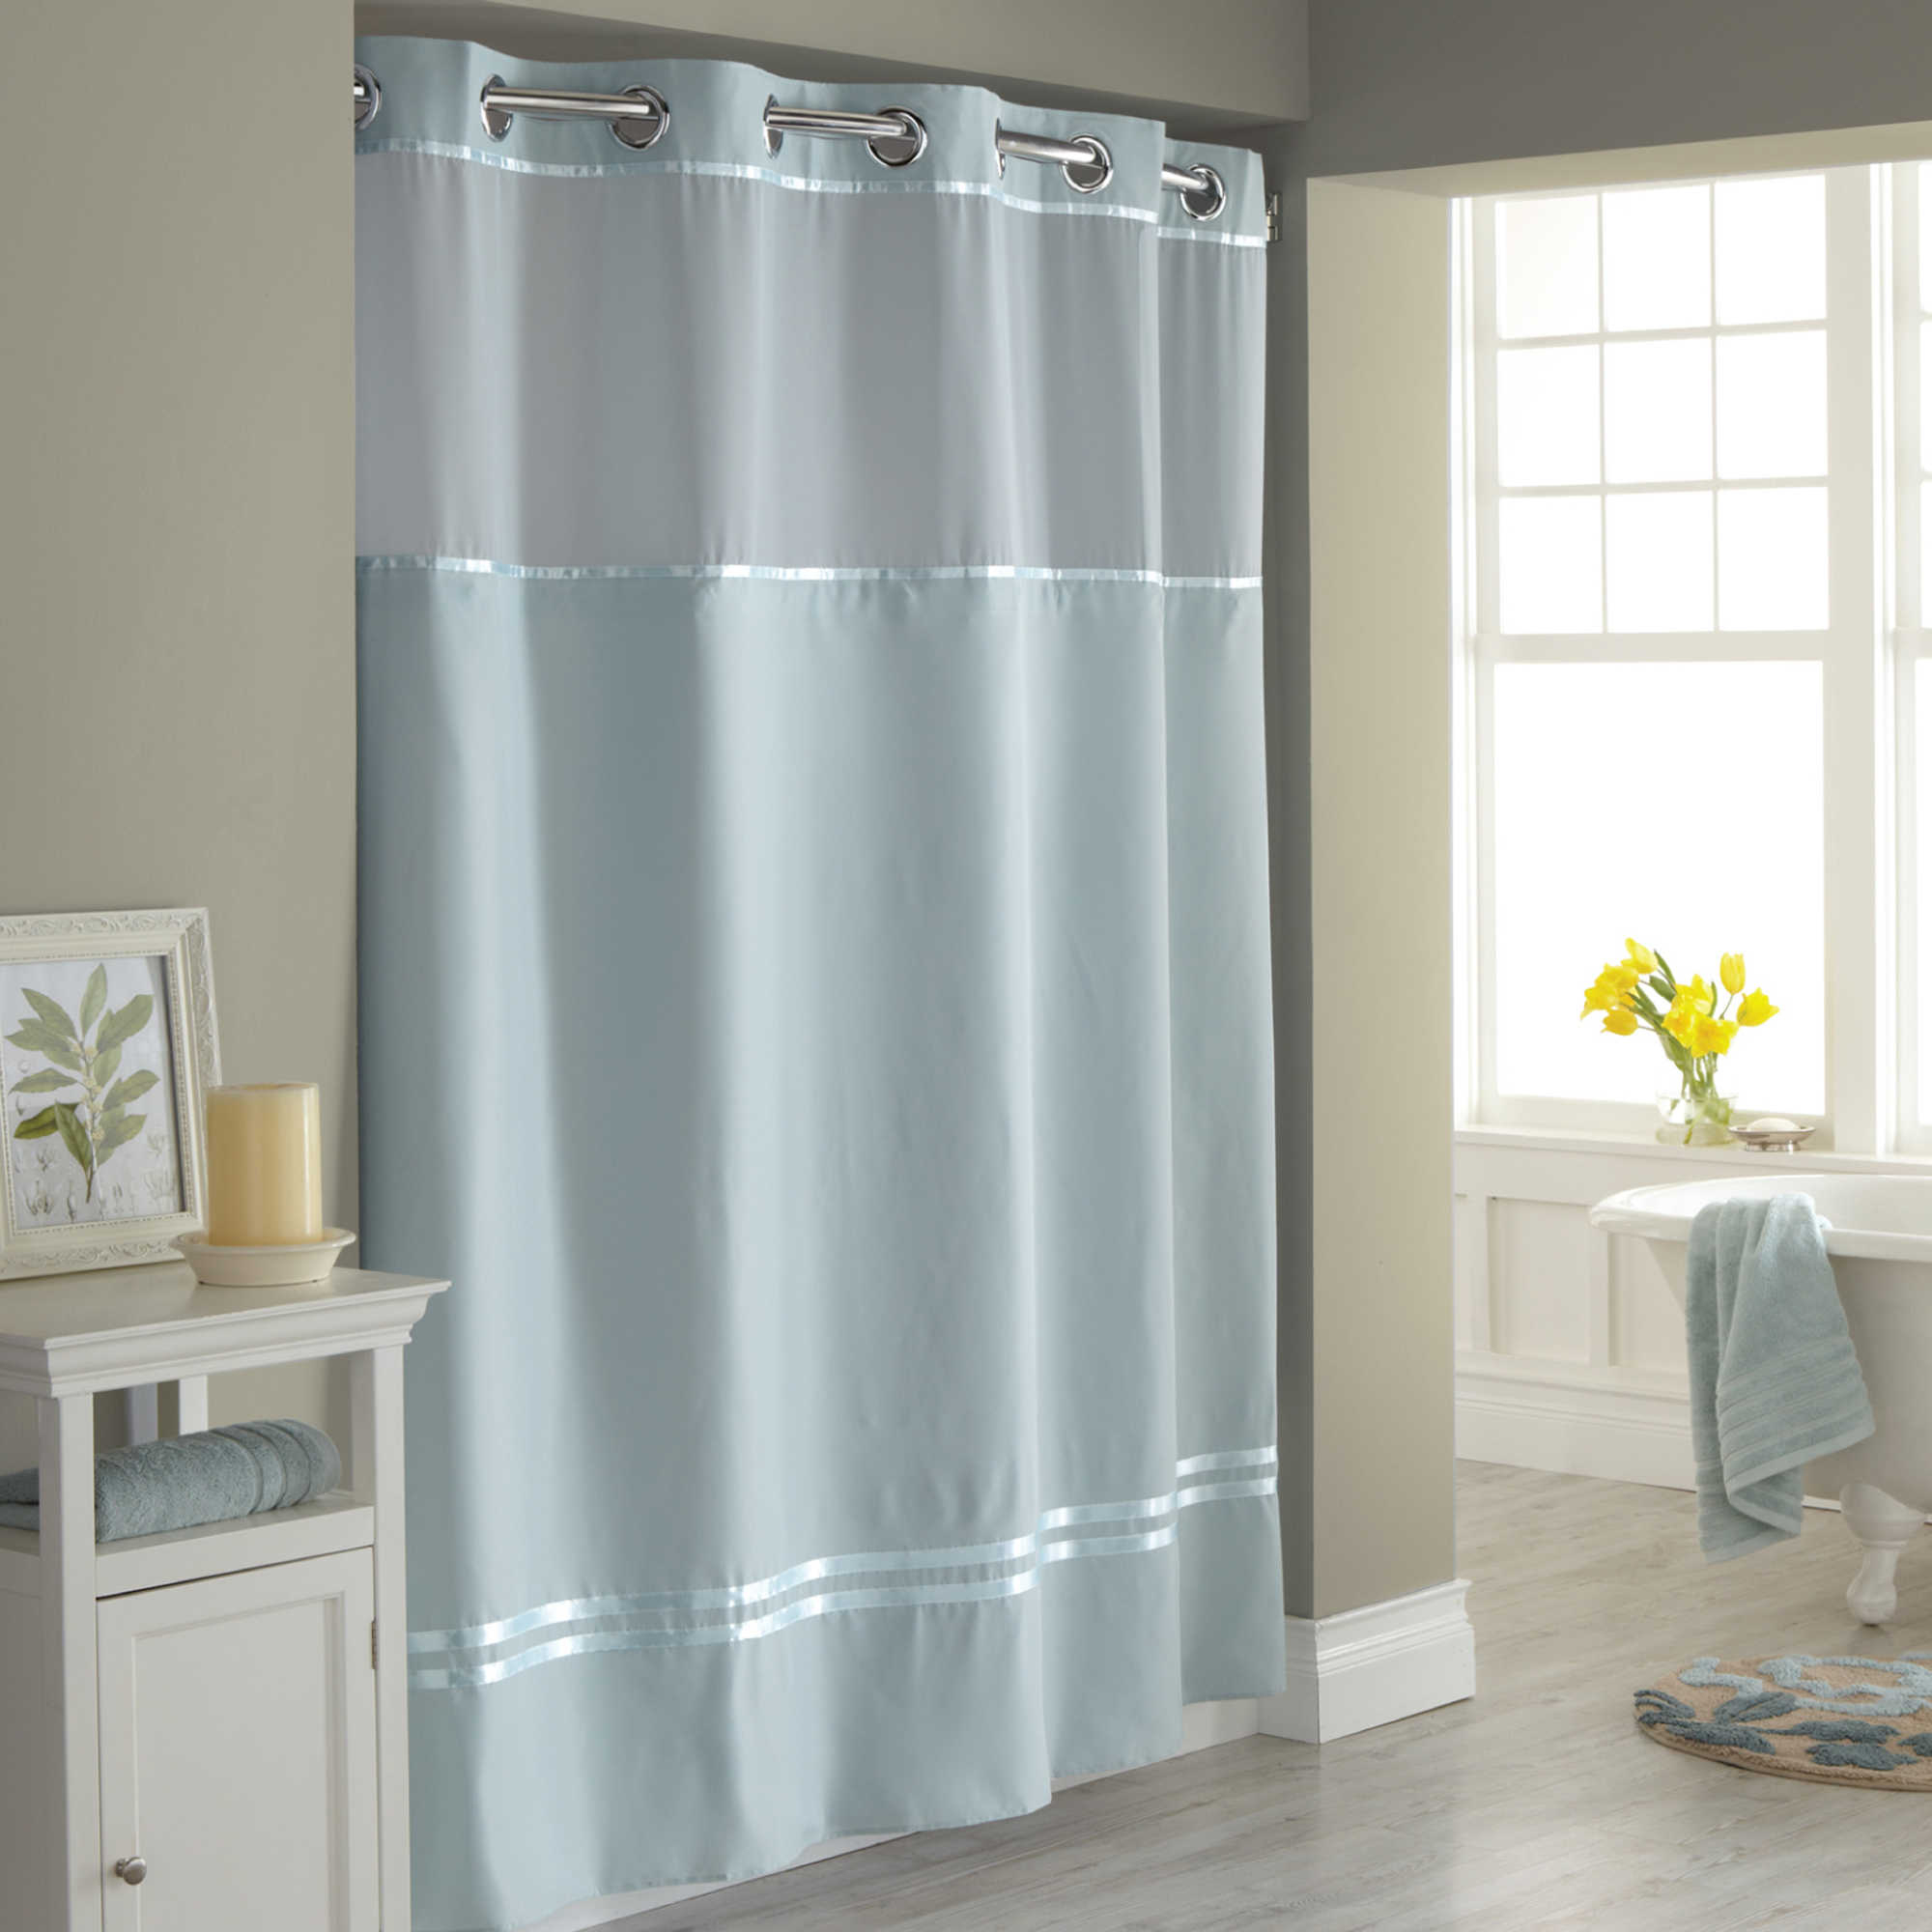 Hookless Shower Curtain Snap Liner Extra Long • Shower Curtains Ideas